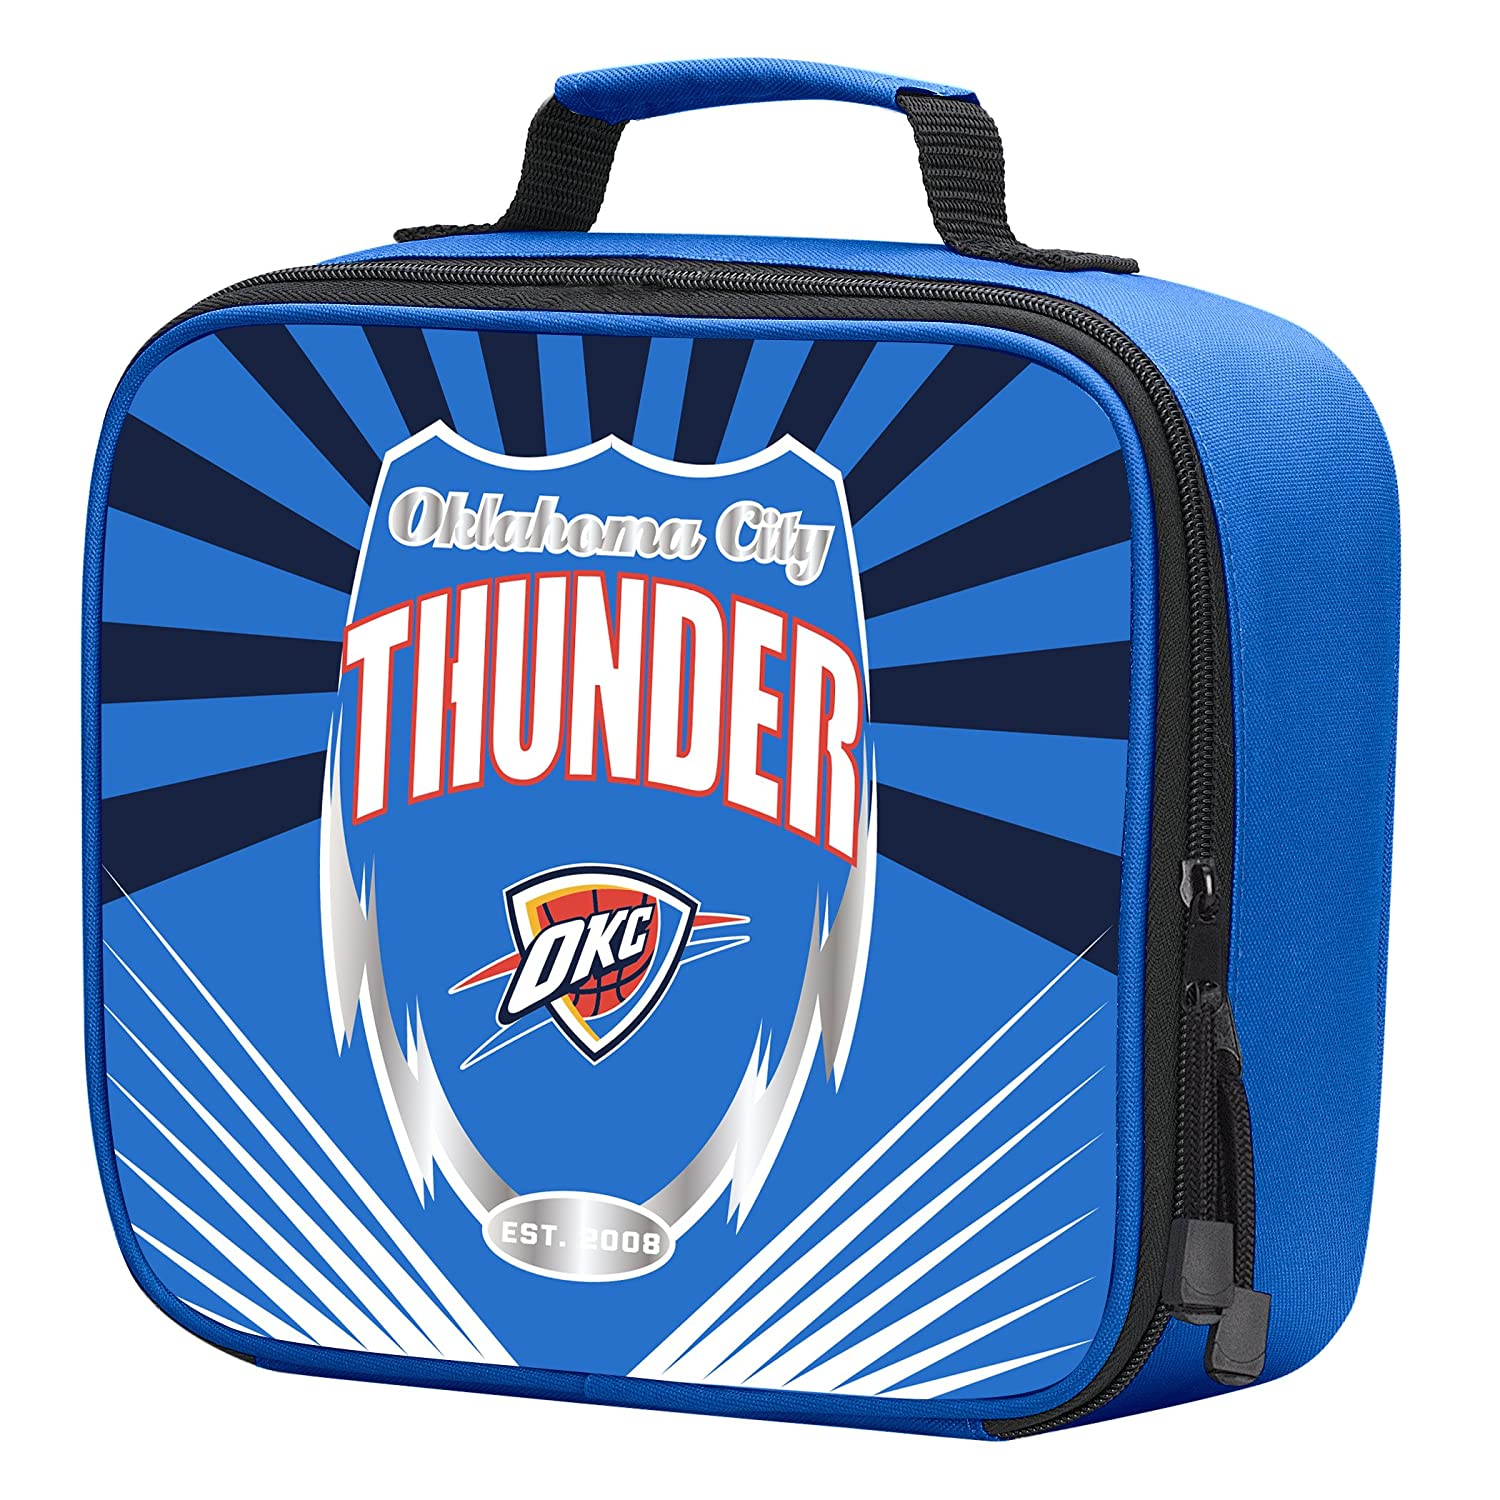 Officially Licensed NBA Lightning Kids Lunch Kit Bag Multi Color 10 x 3 x 8.5